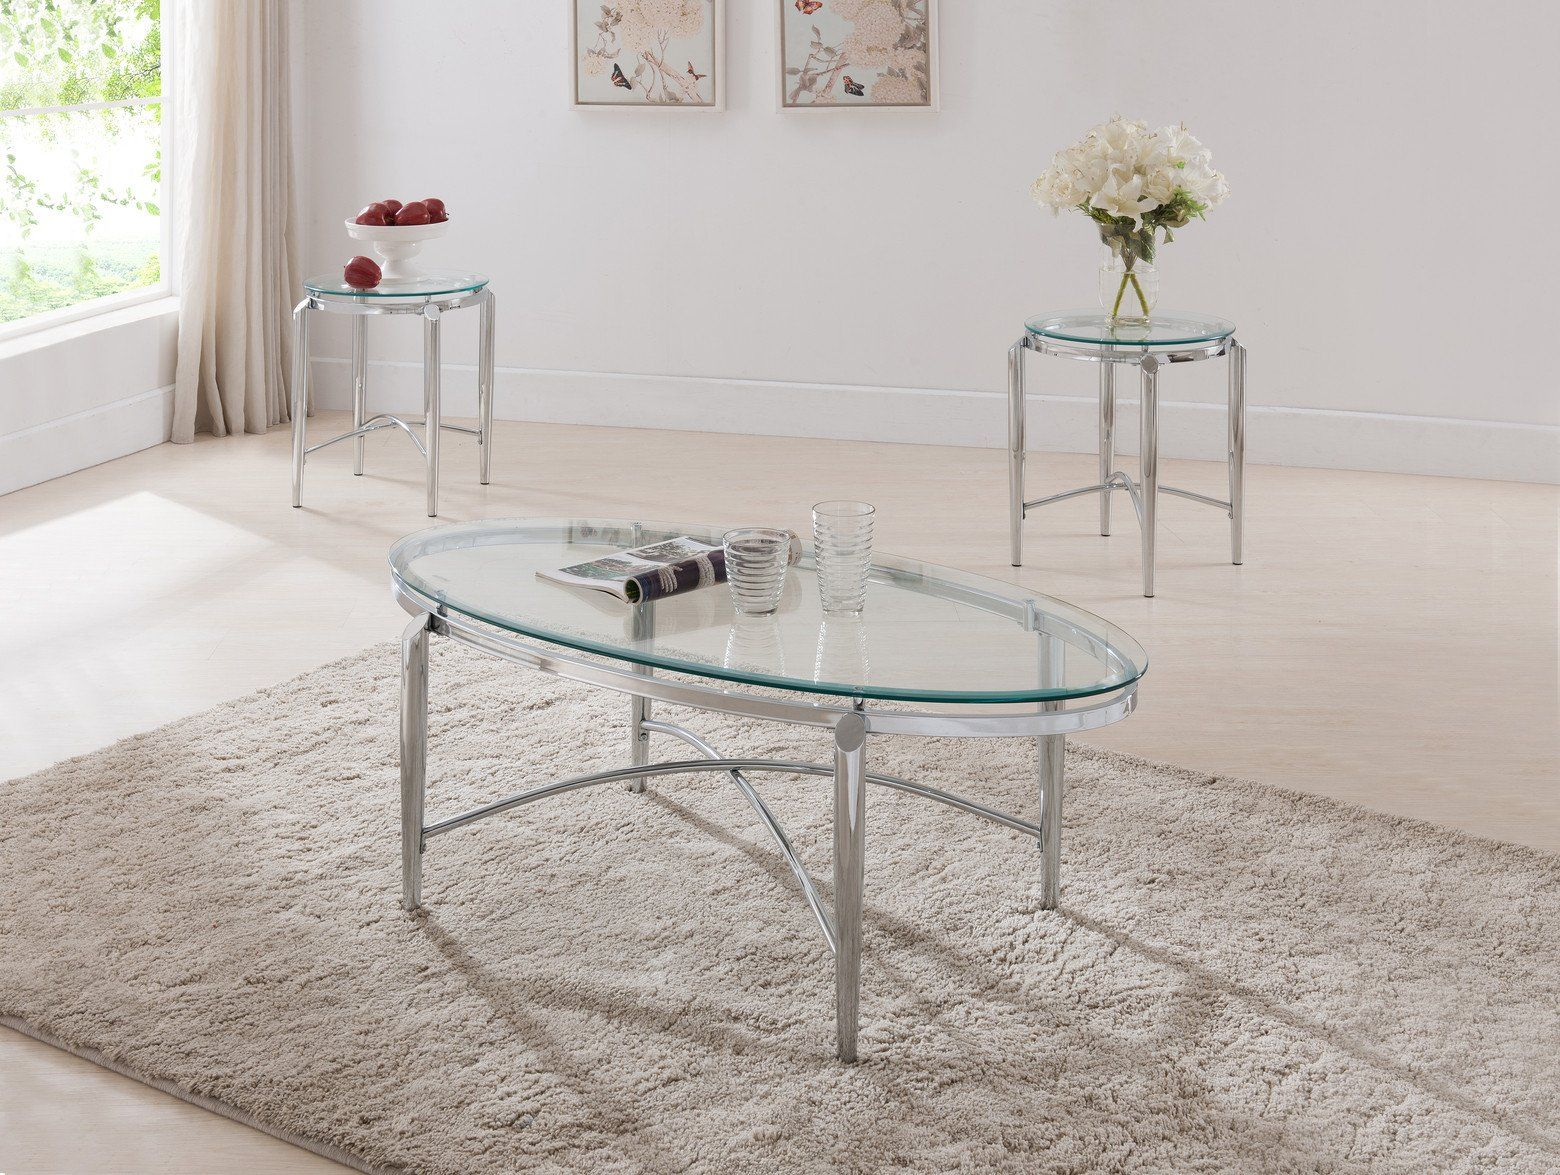 3 Piece Chrome Metal Glass Top Modern Occasional Cocktail Coffee 2 End Tables Set 3 Piece Coffee Table Set Sofa End Tables End Table Sets